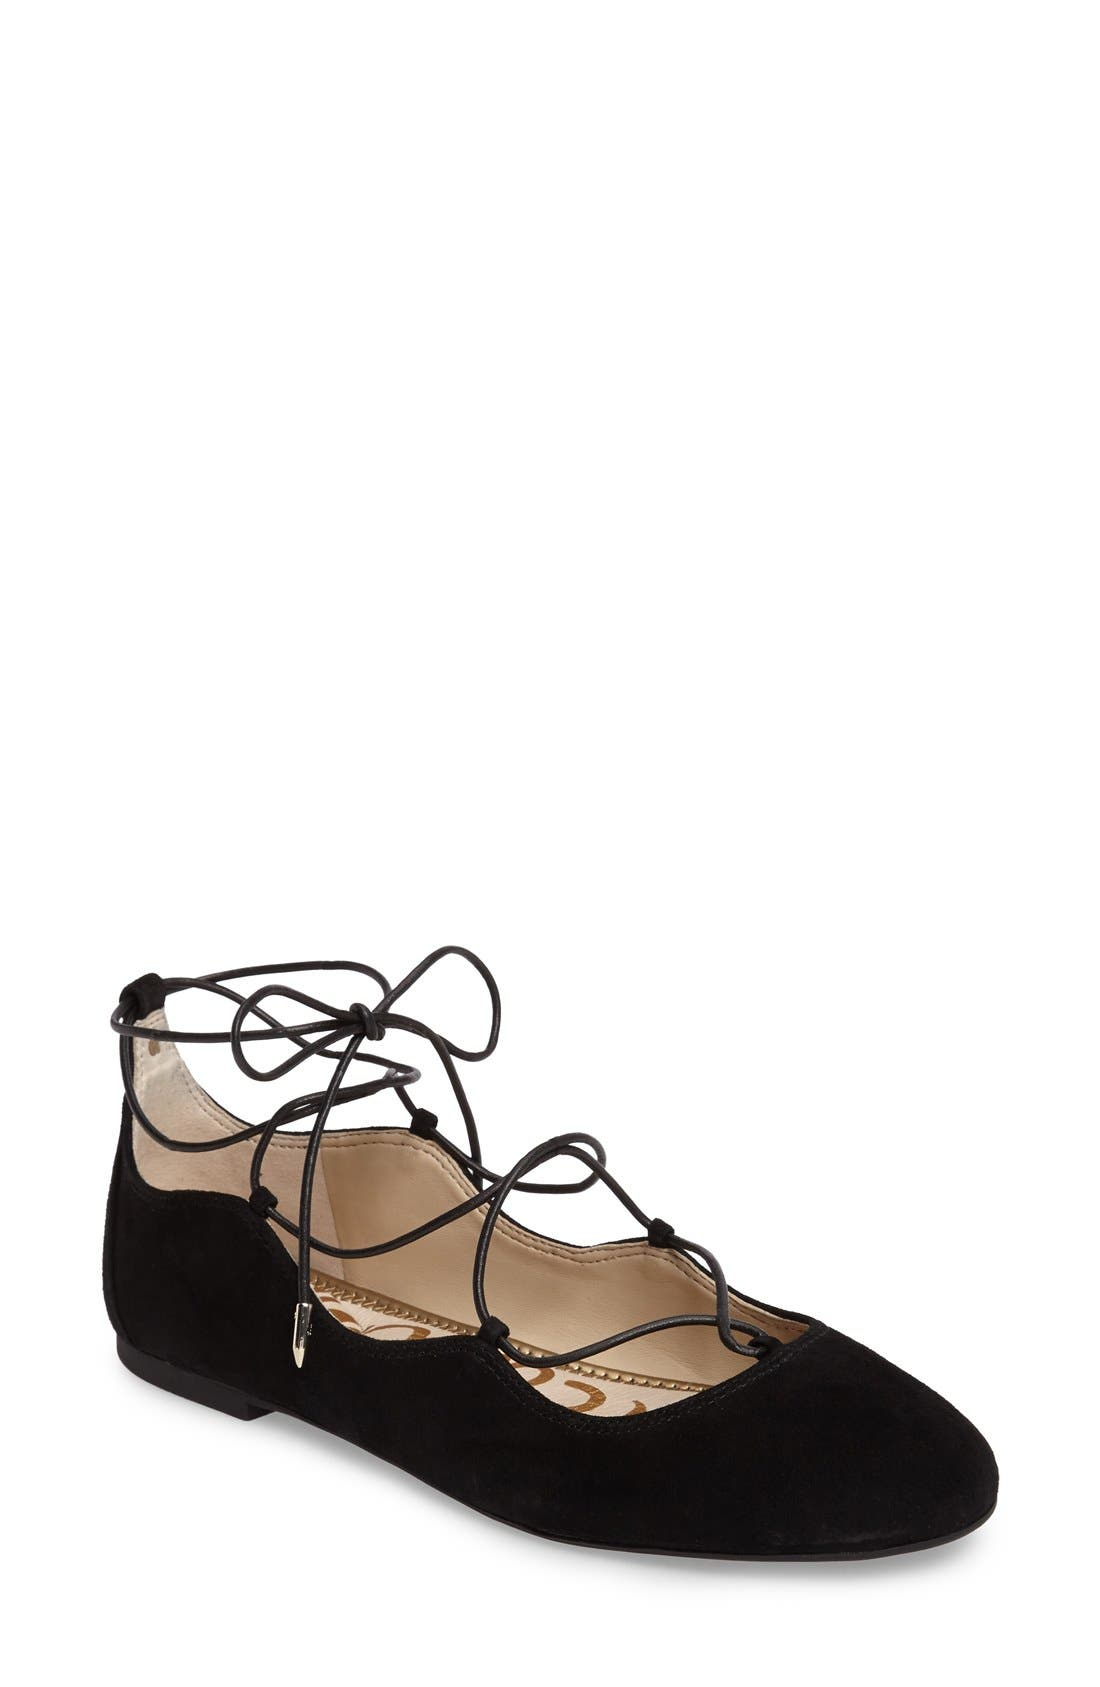 Flynt Ghillie Flat,                             Main thumbnail 1, color,                             Black Suede